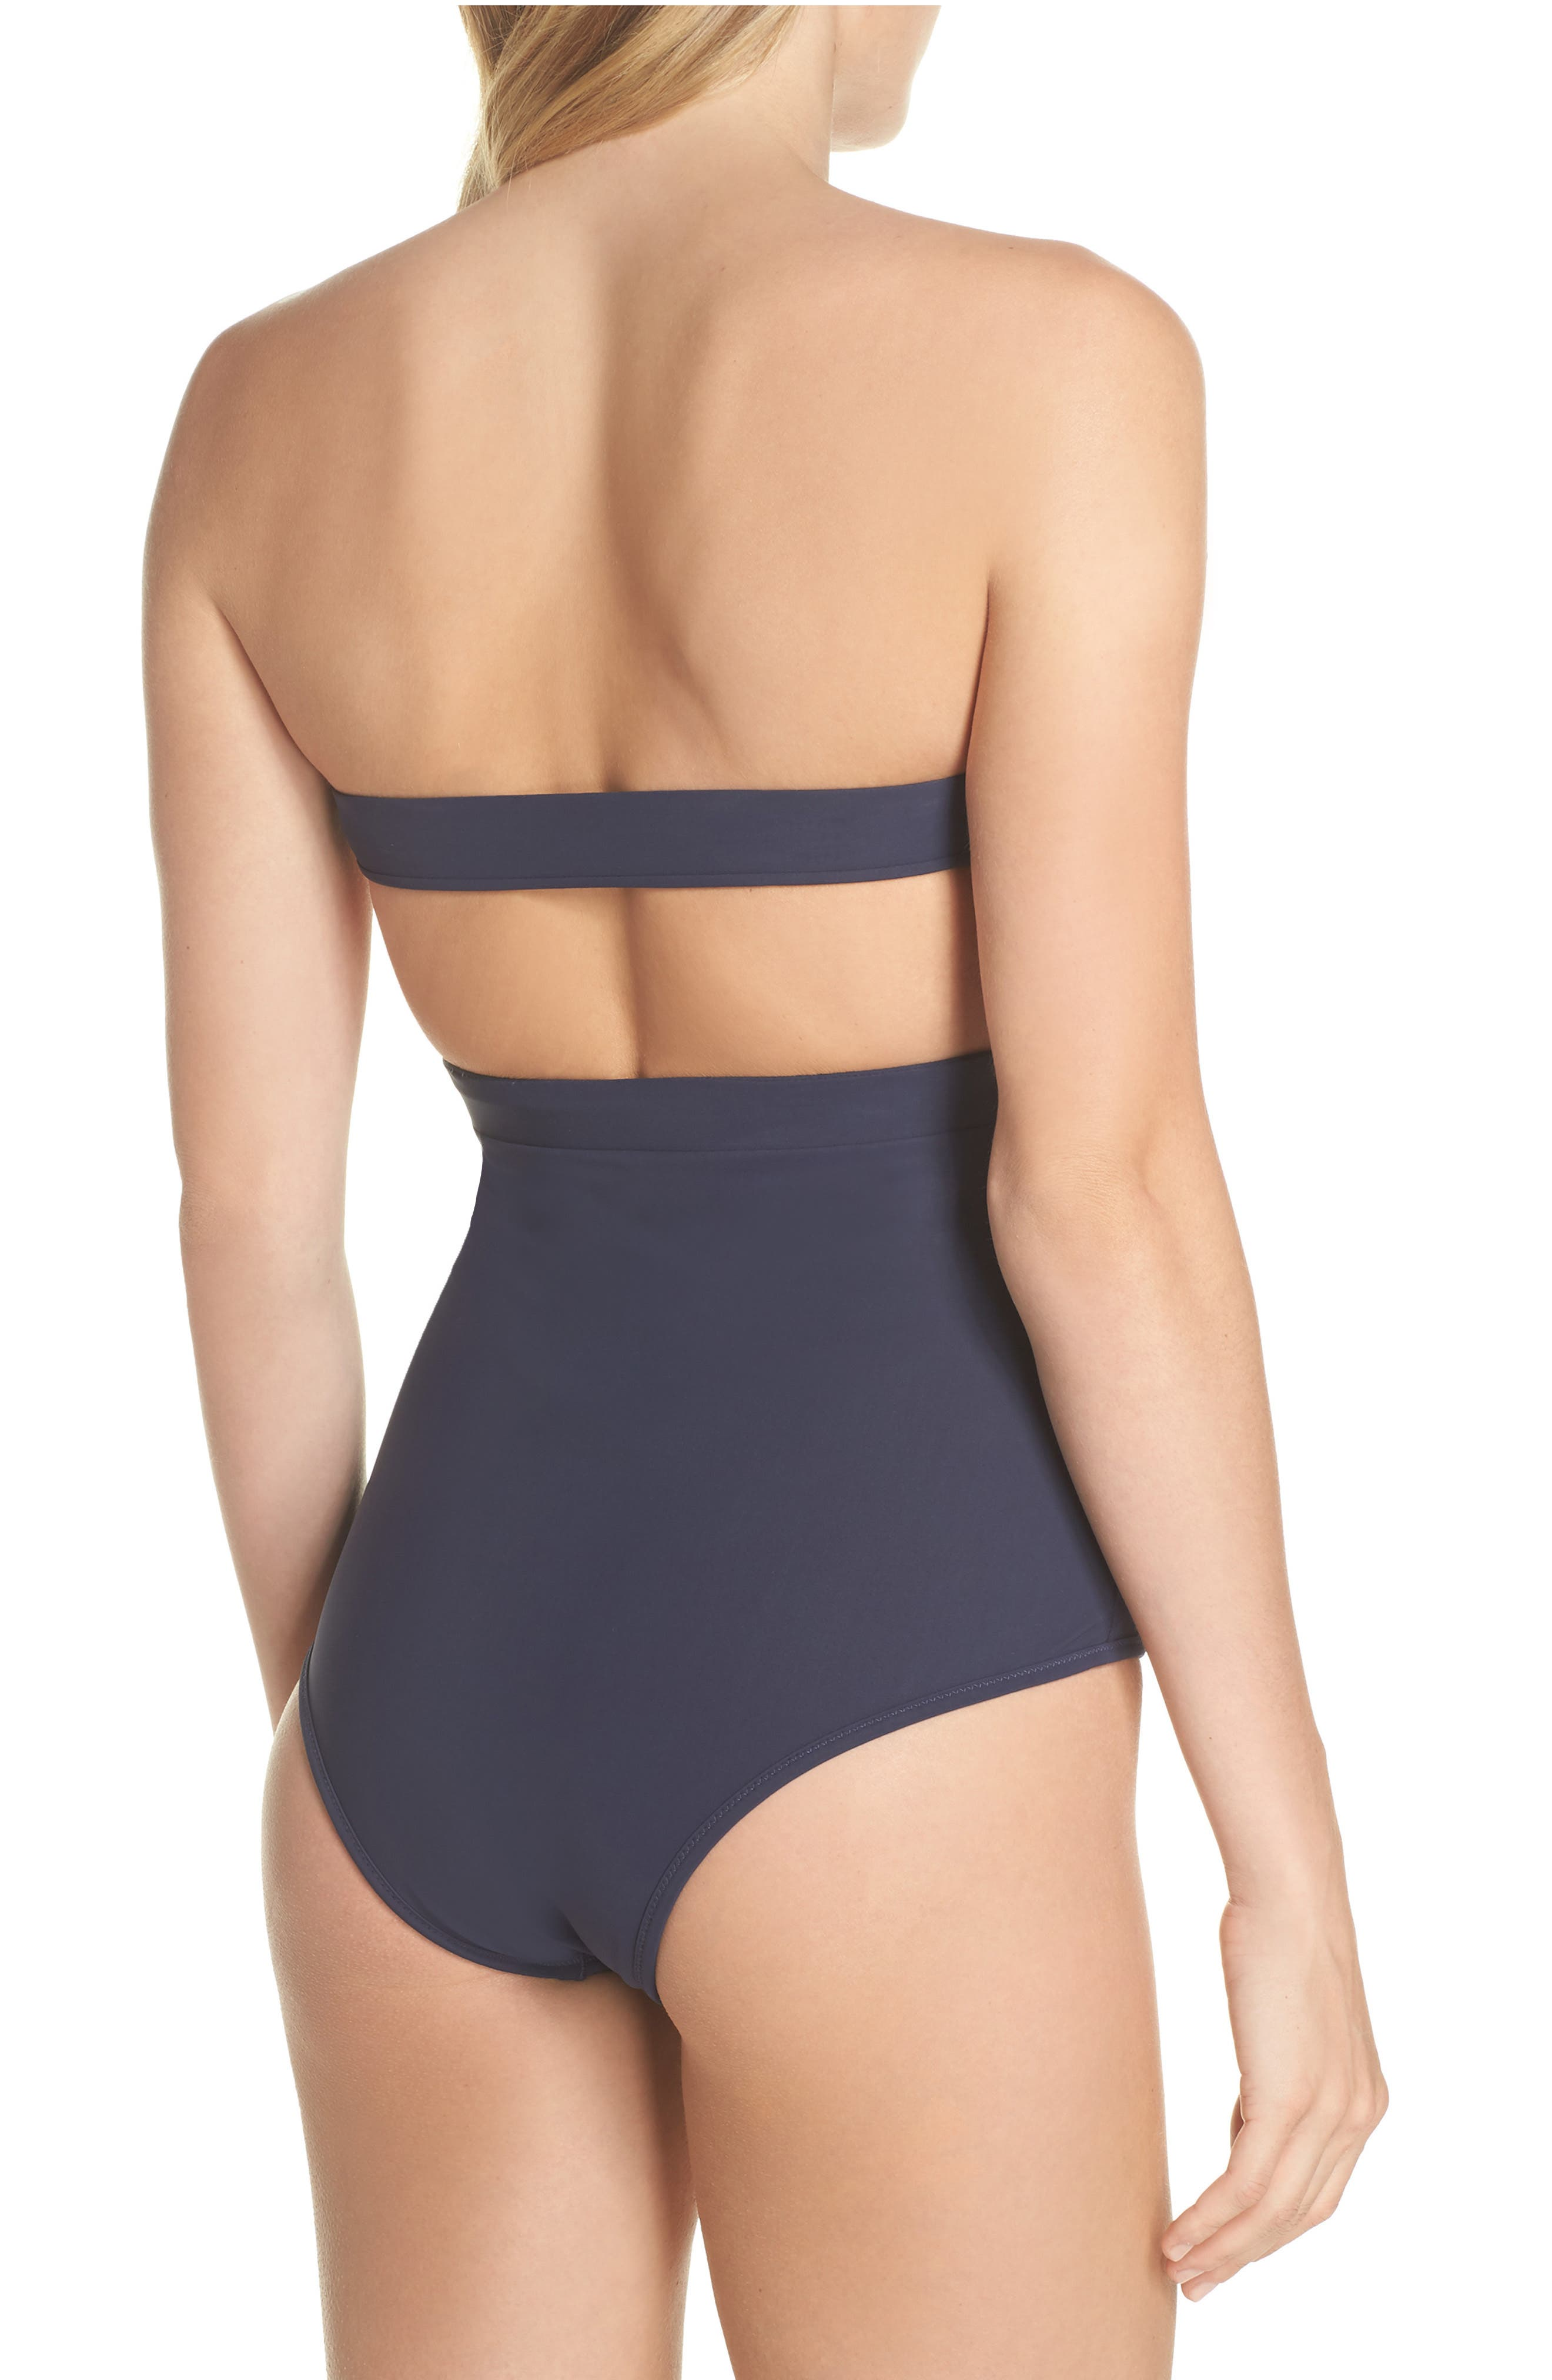 BB Reversible One-Piece Swimsuit,                             Alternate thumbnail 3, color,                             WHITE/ NAVY